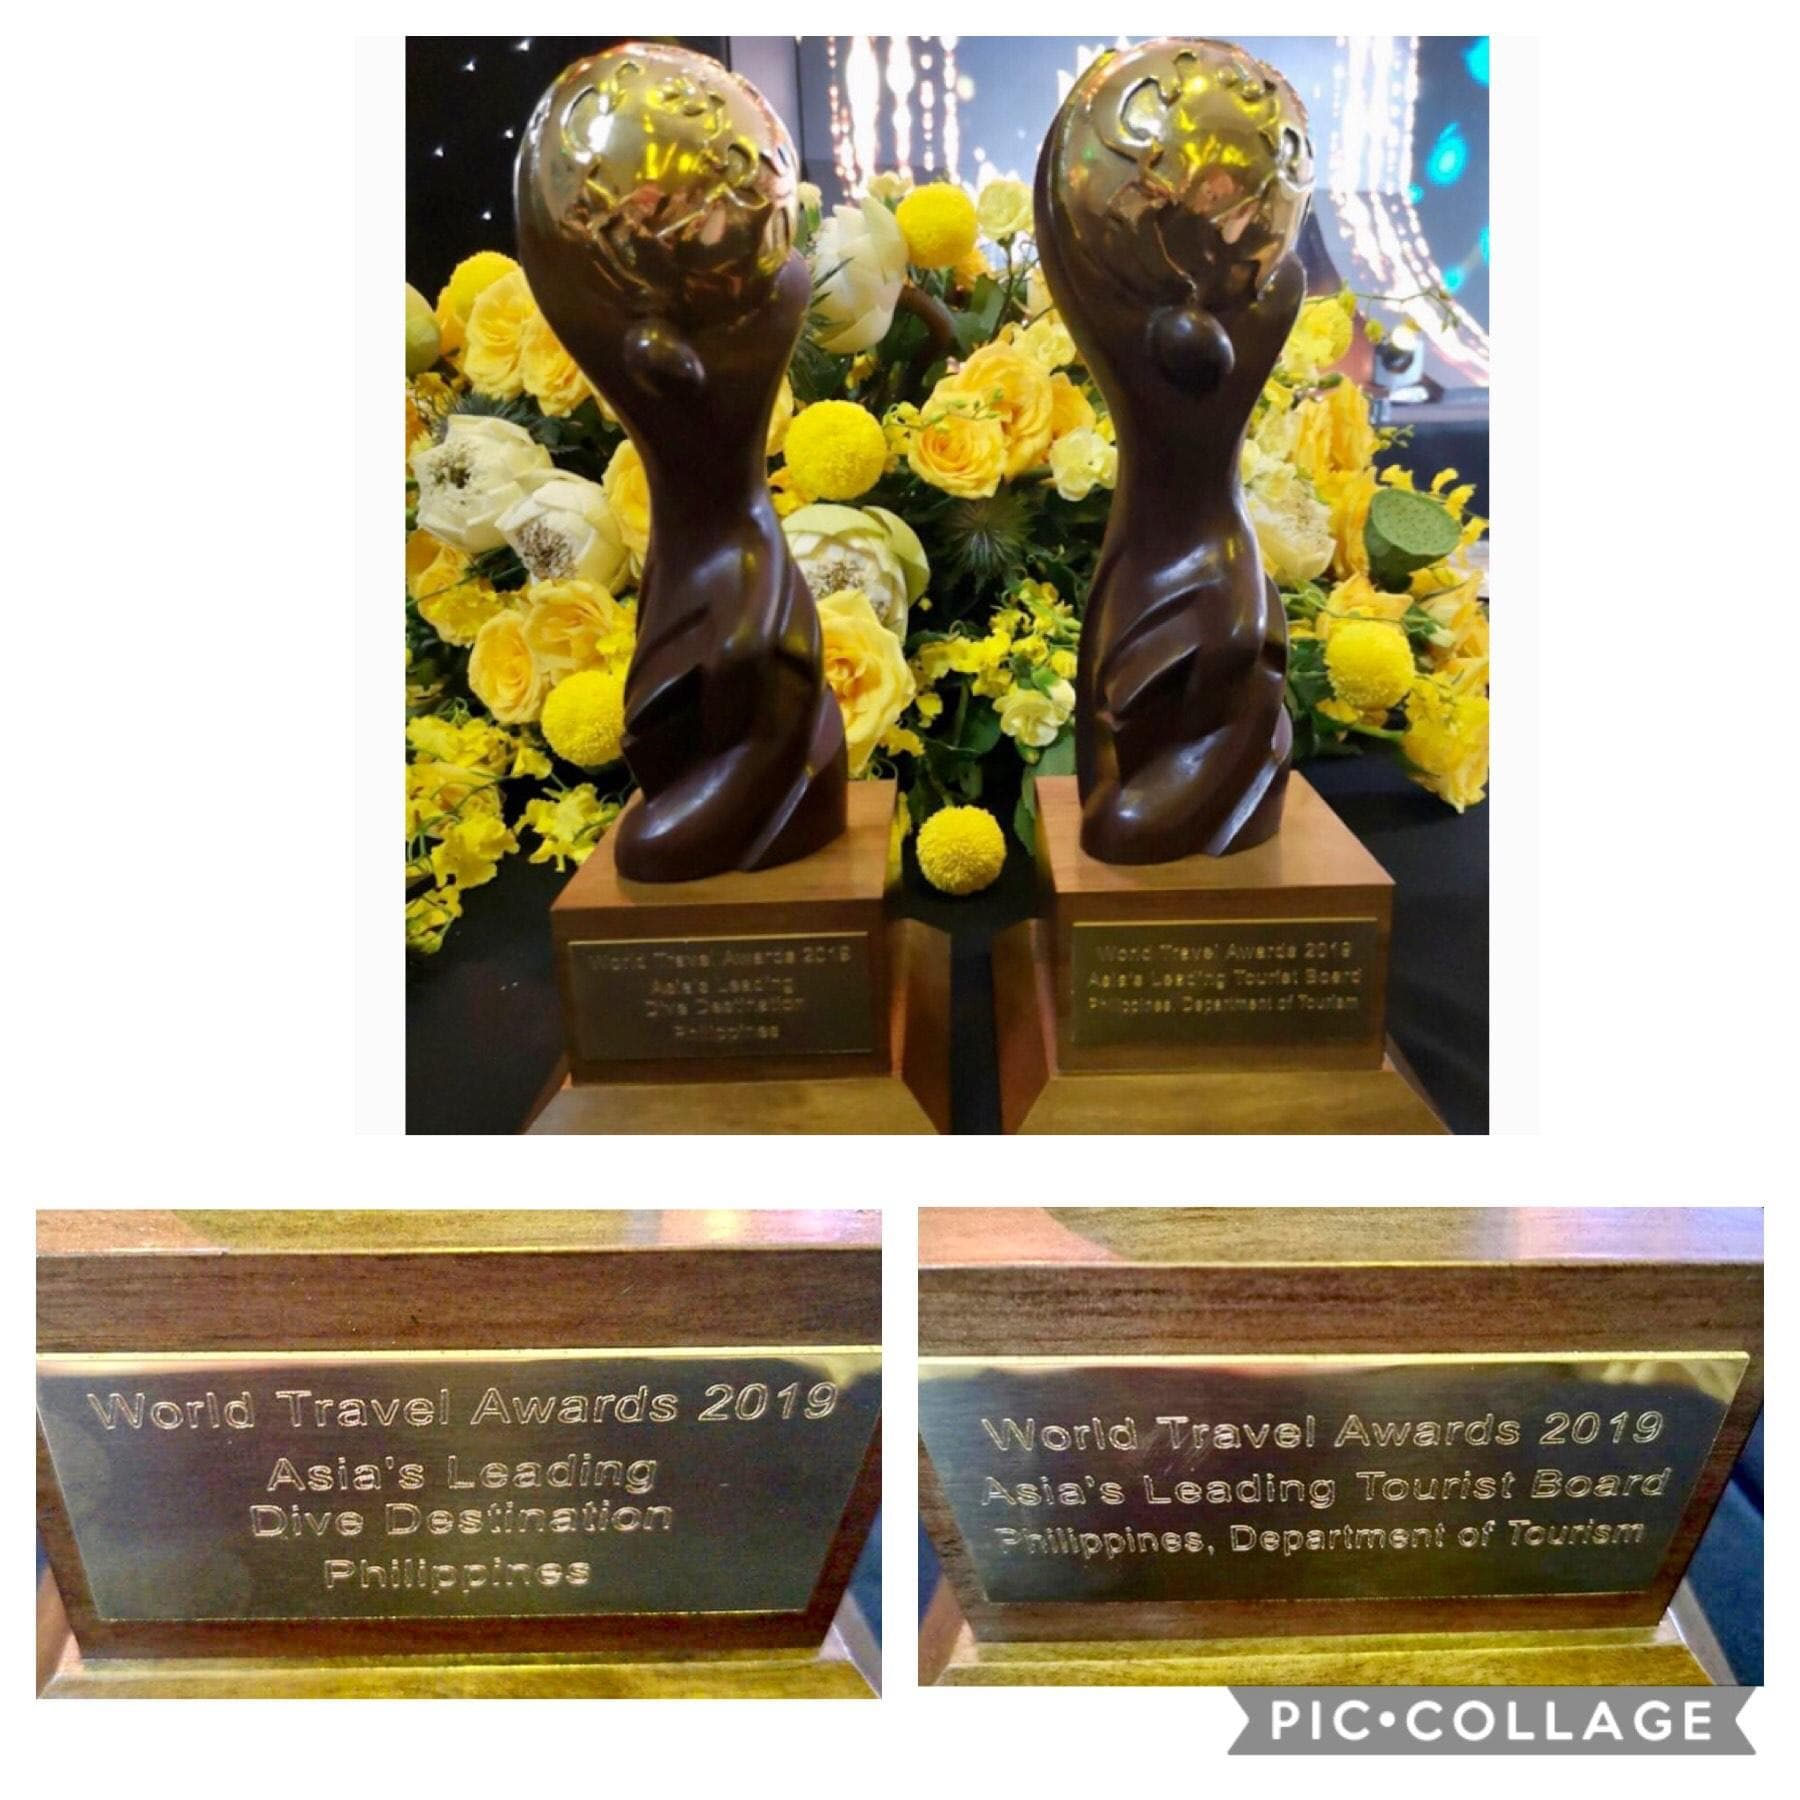 World Travel Awards 2019 Trophy